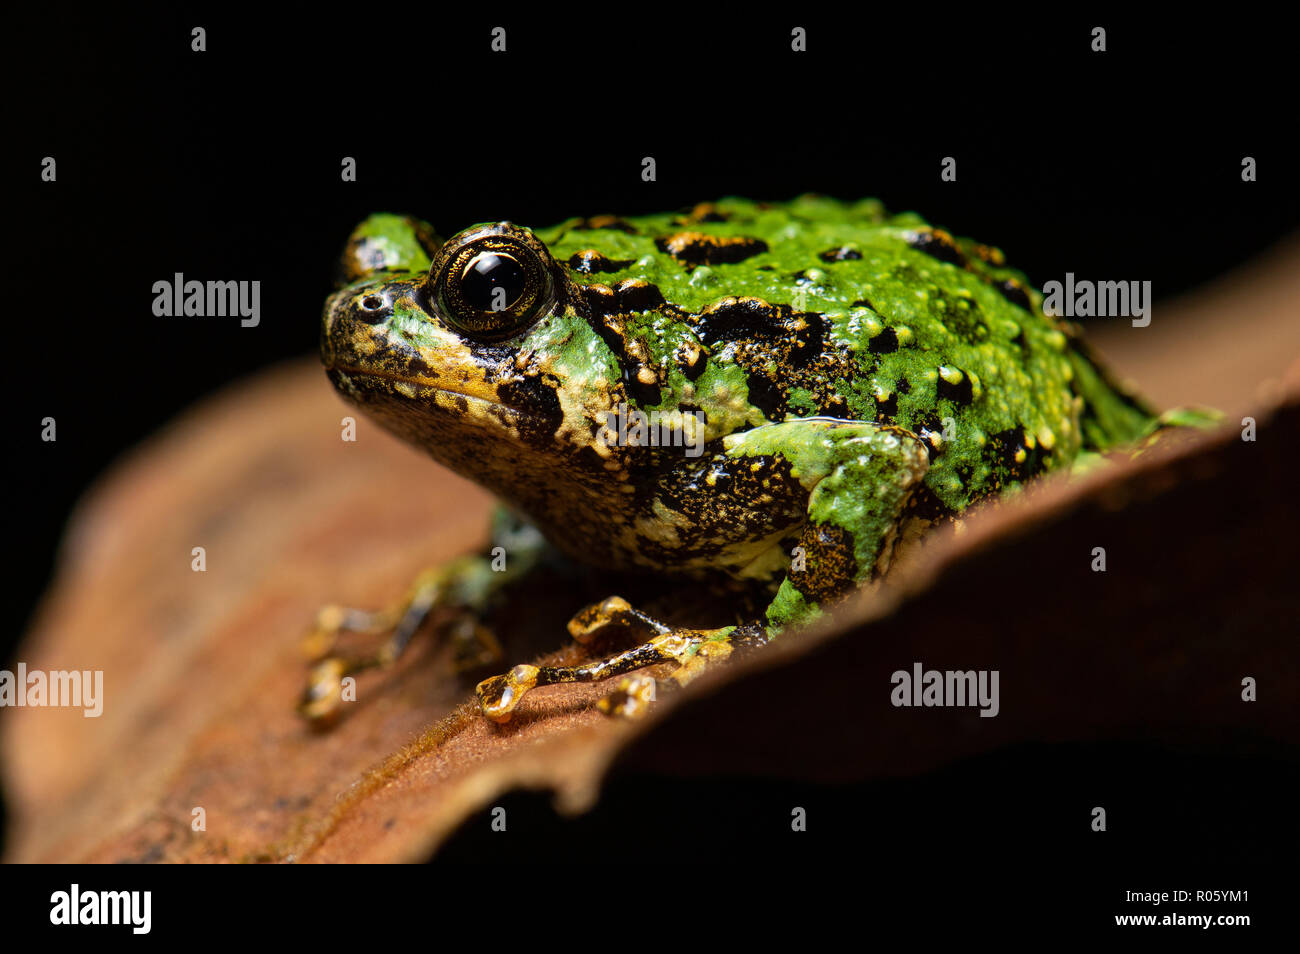 A frog (Scaphiophryne marmorata) in the rainforests of Andasibe, Madagascar - Stock Image